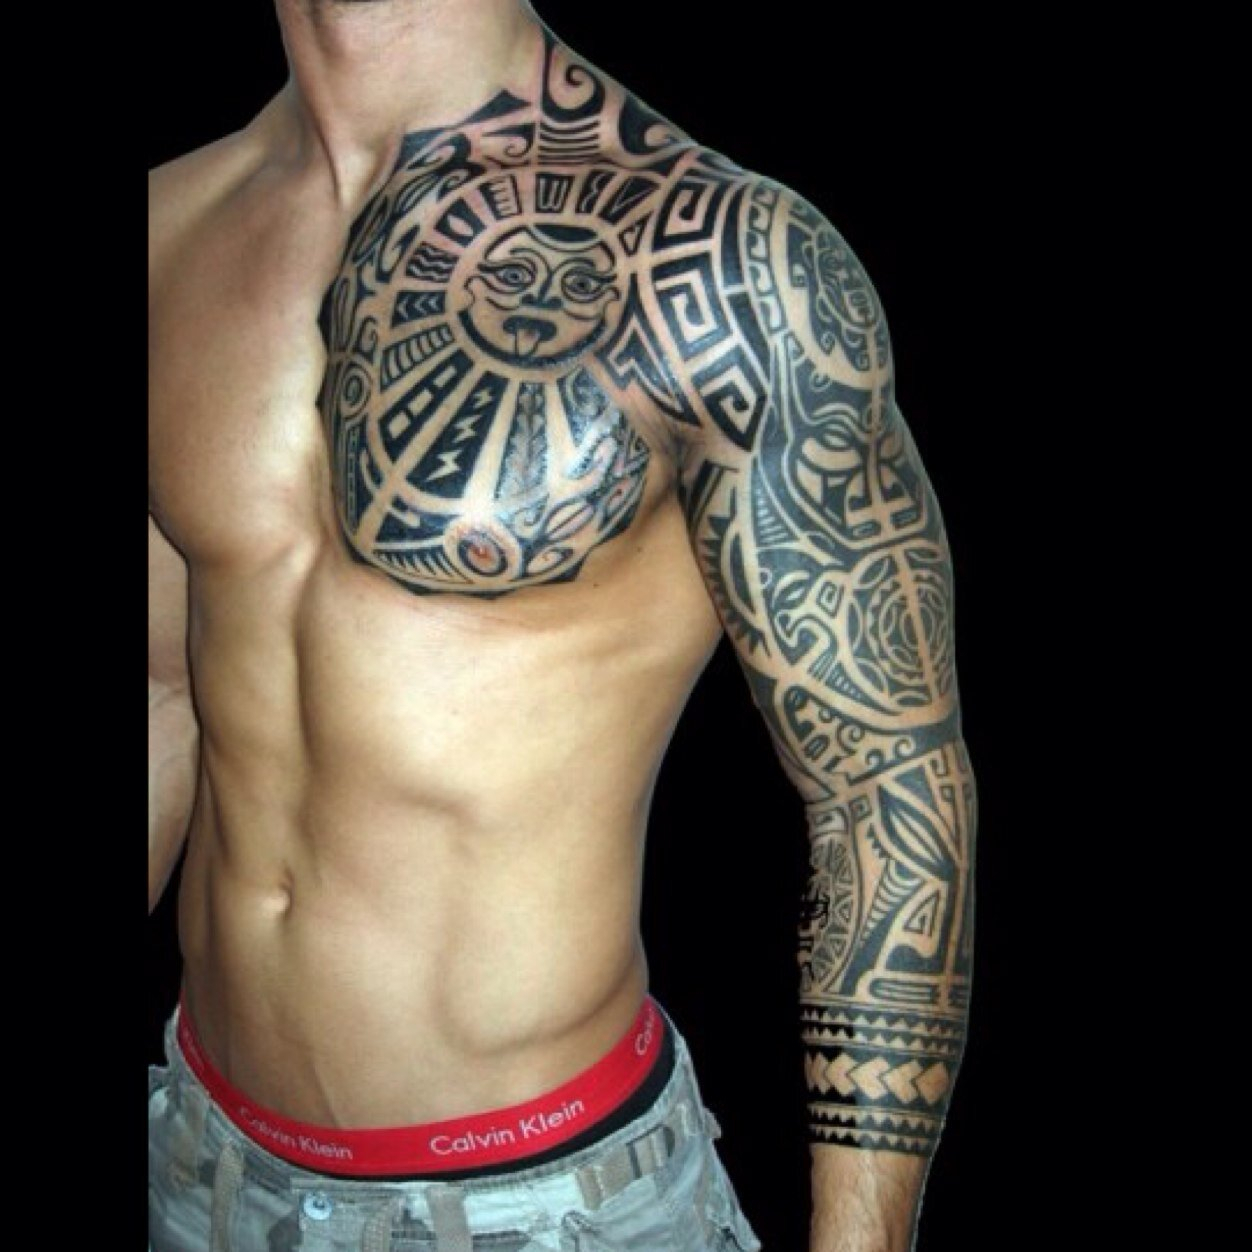 Tattoo Sleeve And Chest Half Sleeve Tattoo Site inside sizing 1252 X 1252